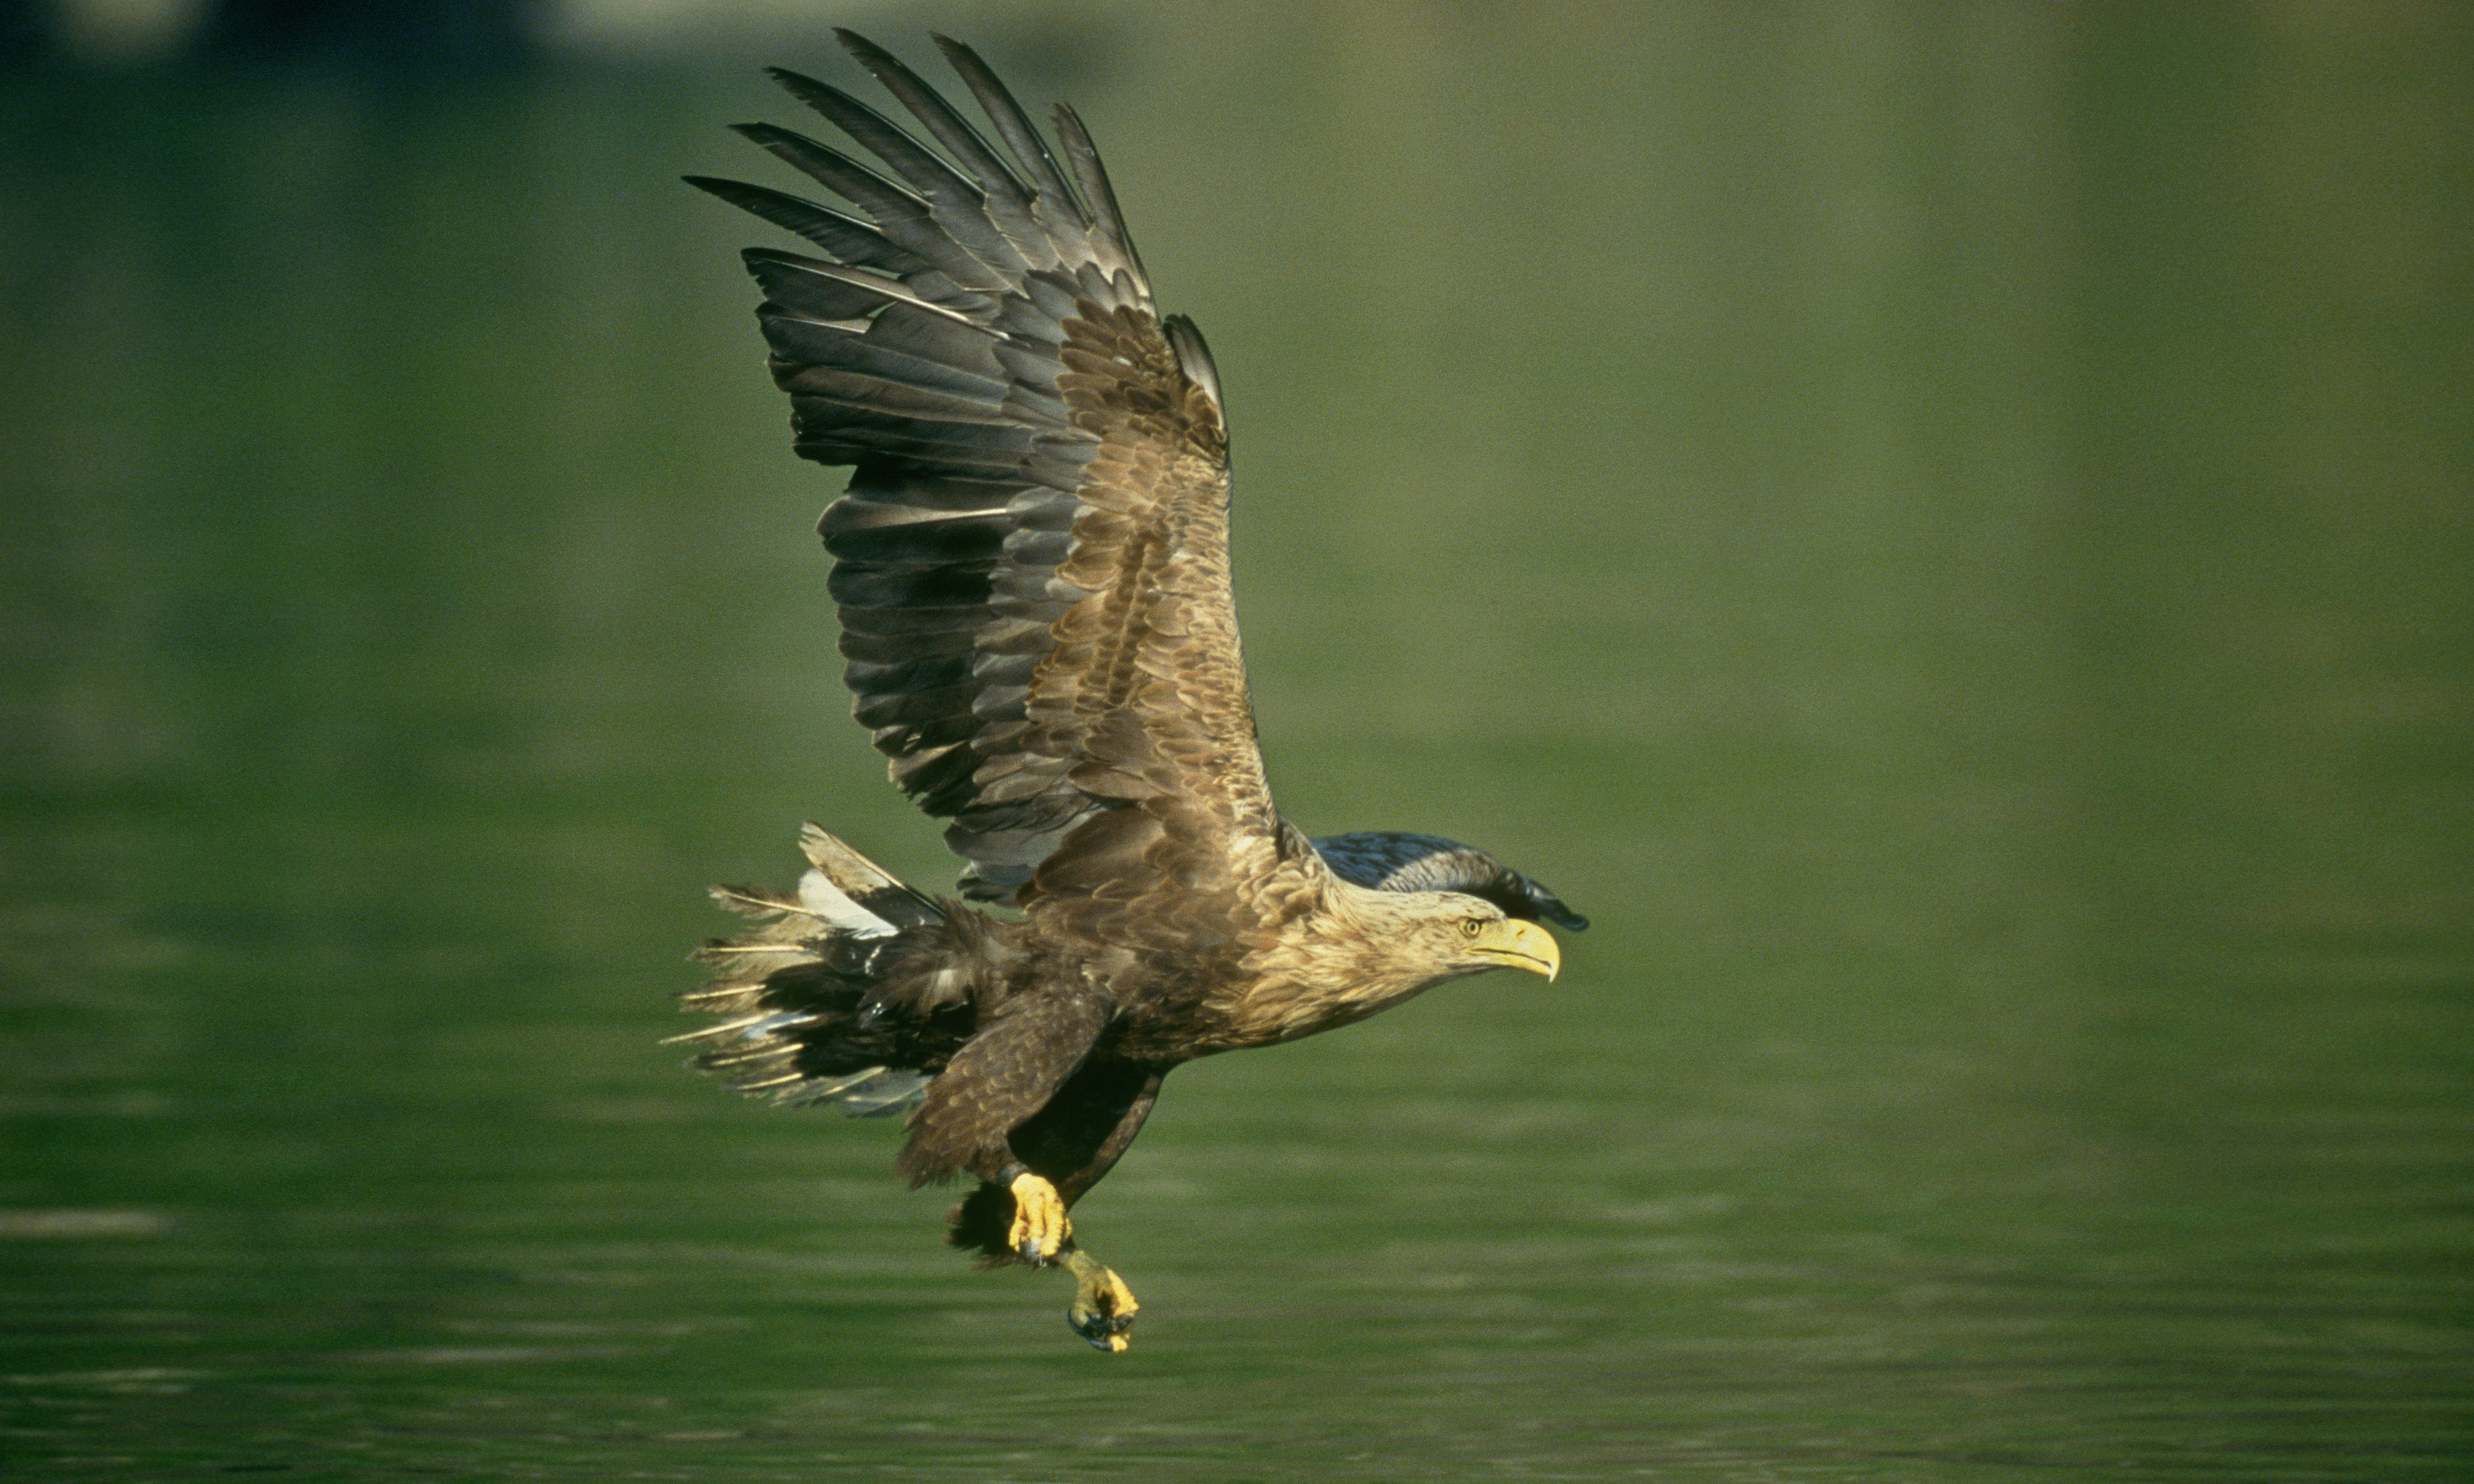 White-tailed eagle adult stooping for fish